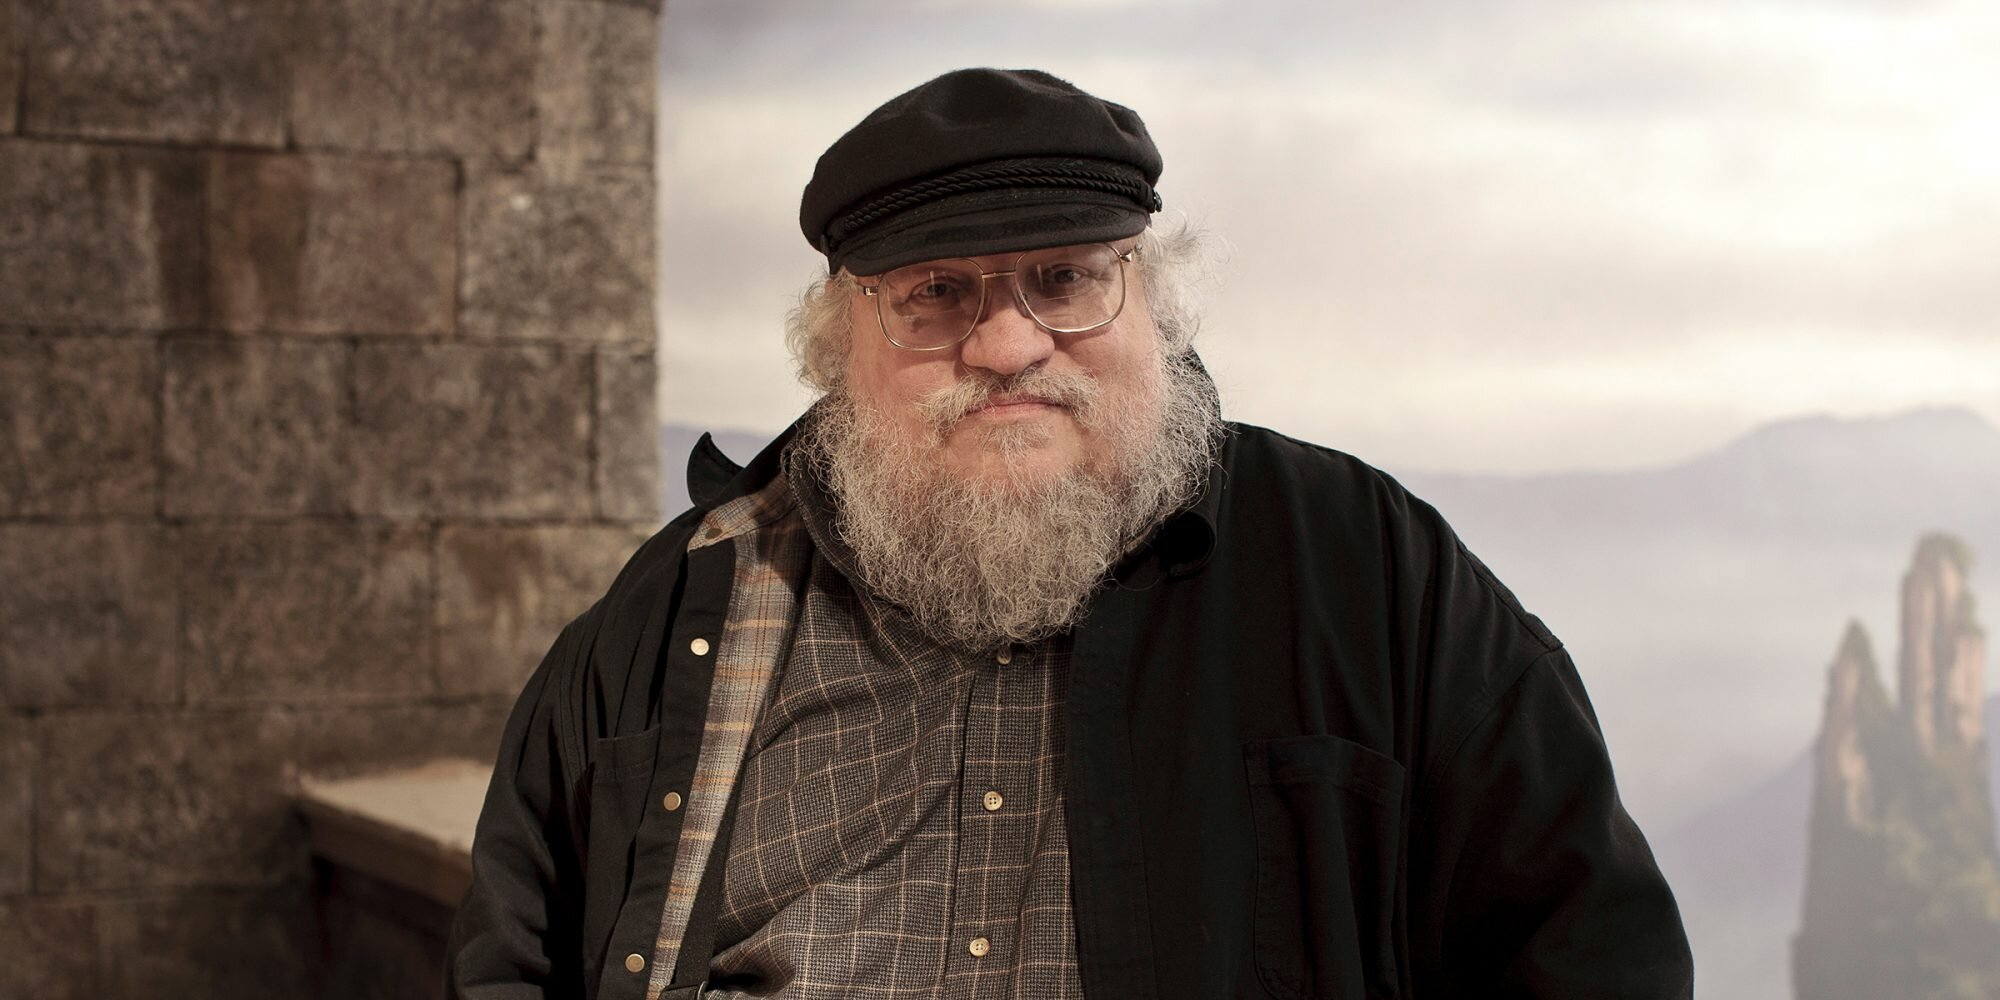 George R.R. Martin just offered a cryptic update on 'The Winds of Winter'... or did he?